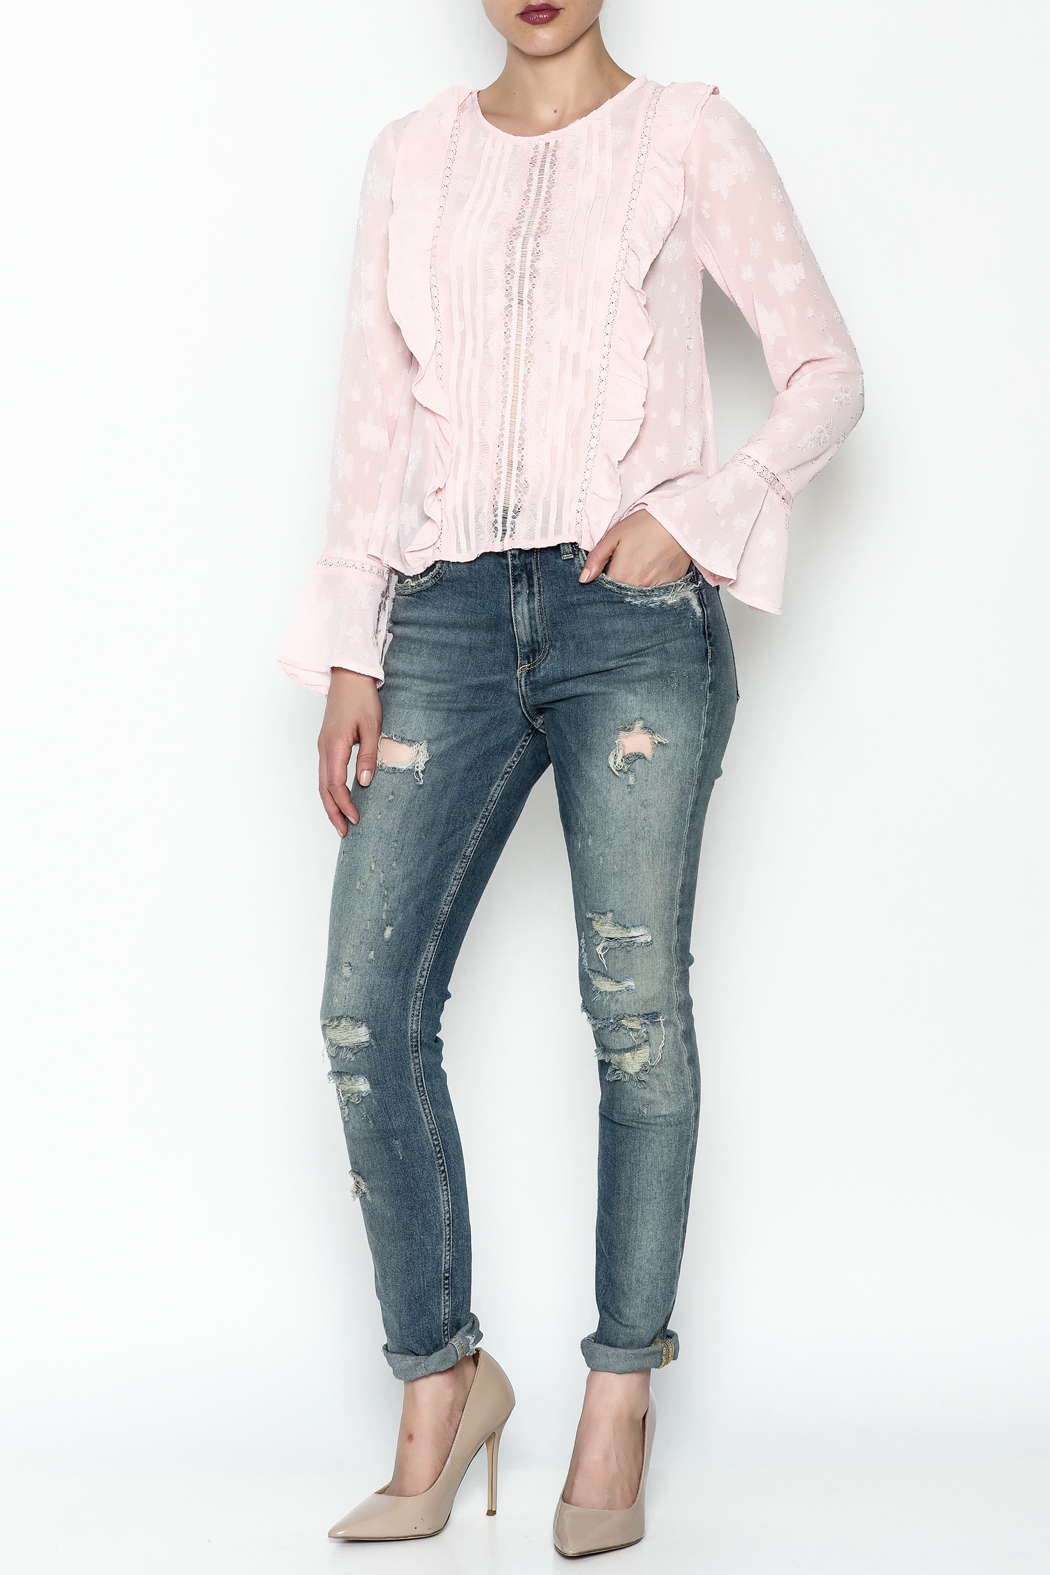 Ark & Co. Pullover Ruffle Blouse - Side Cropped Image